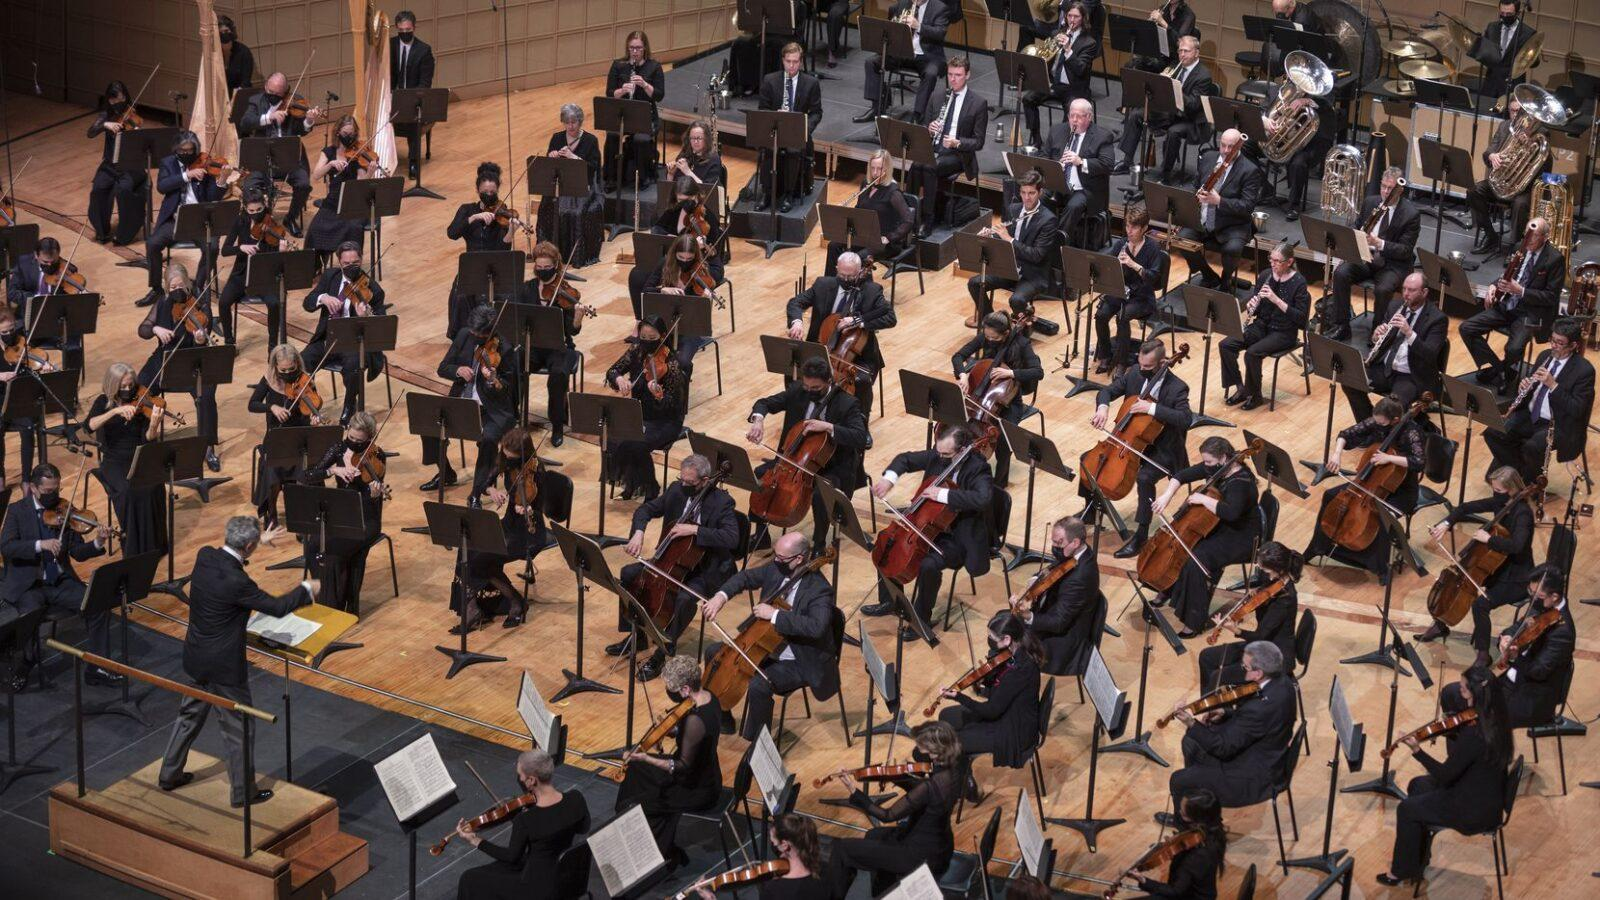 NFT Collection by Dallas Symphony Orchestra-Metropolitan Opera Orchestra